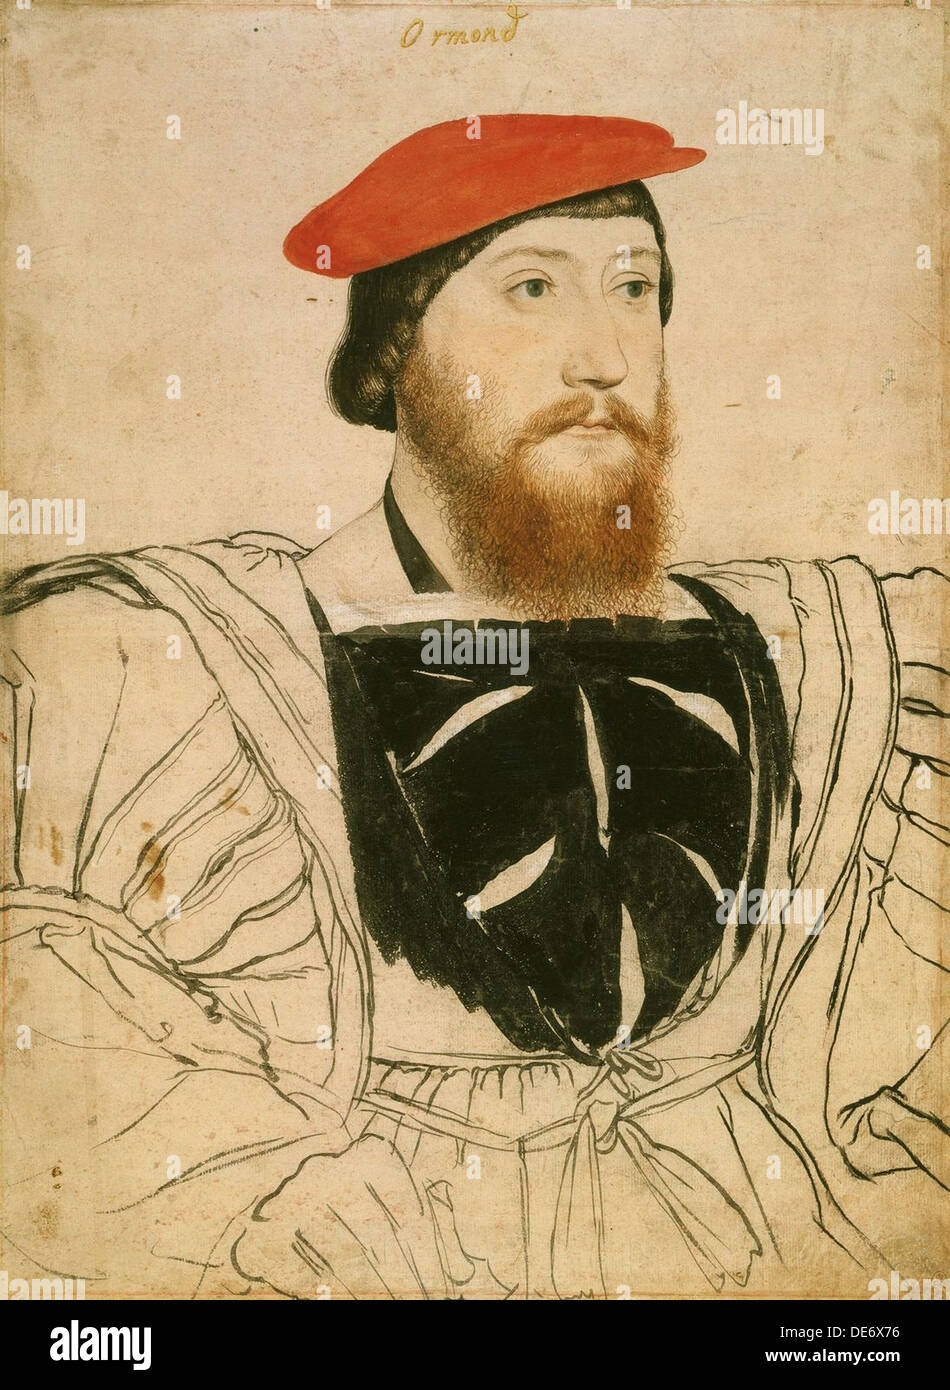 Portrait of James Butler, 9th Earl of Ormond, ca 1537. Artist: Holbein, Hans, the Younger (1497-1543) - Stock Image